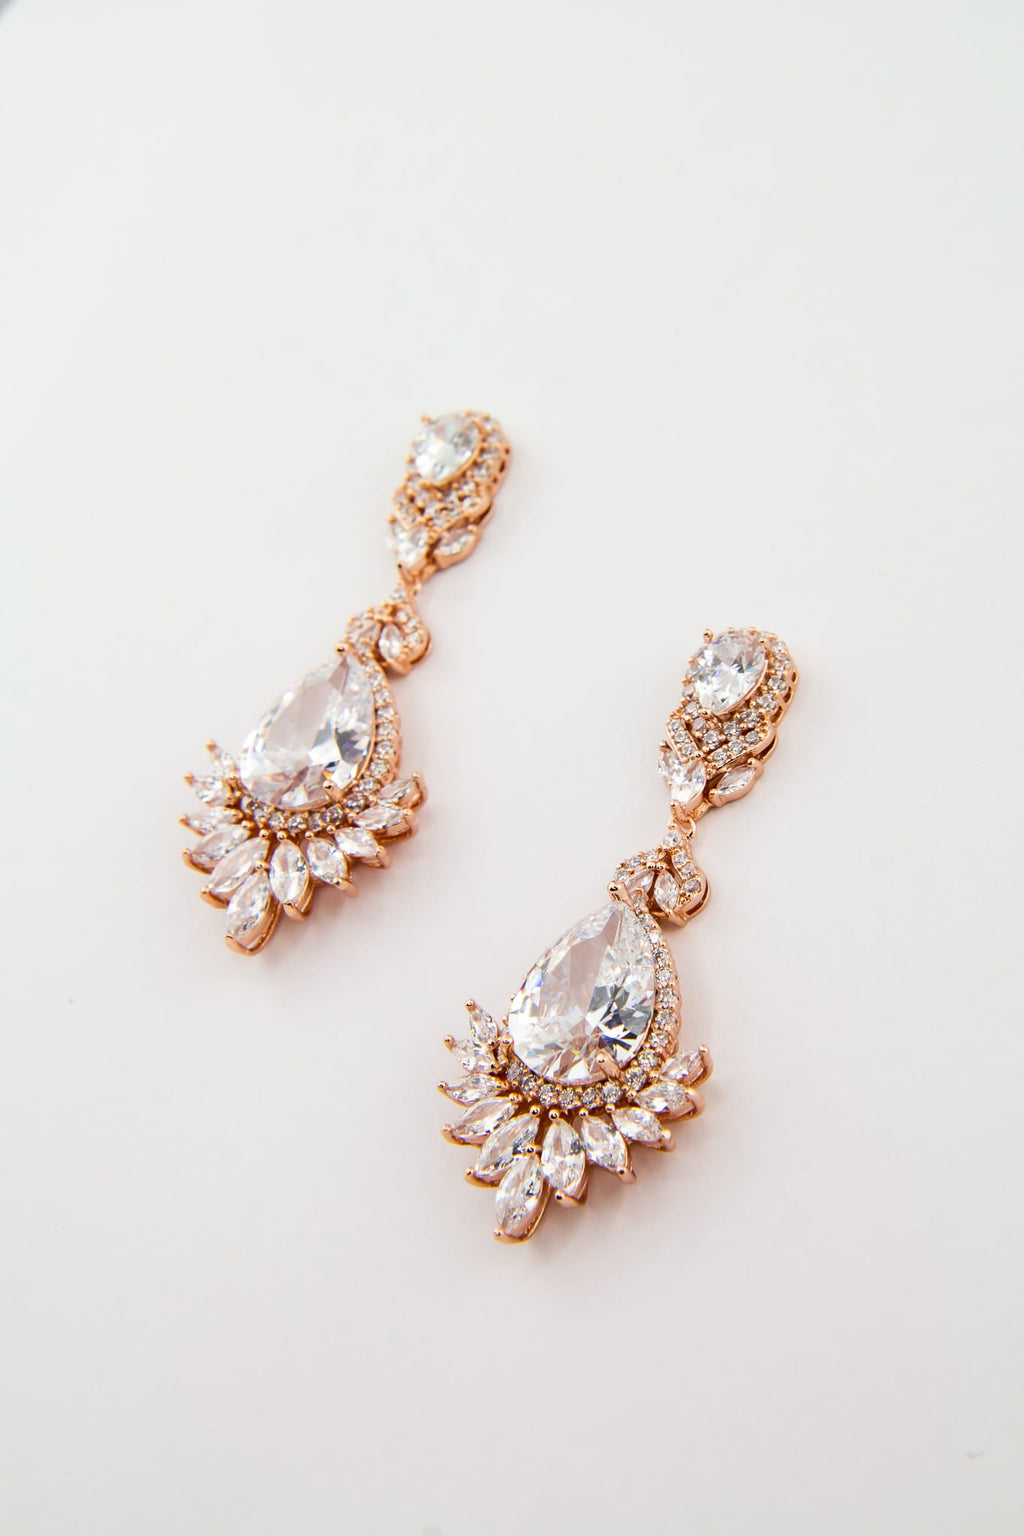 Harper's Fire Earrings